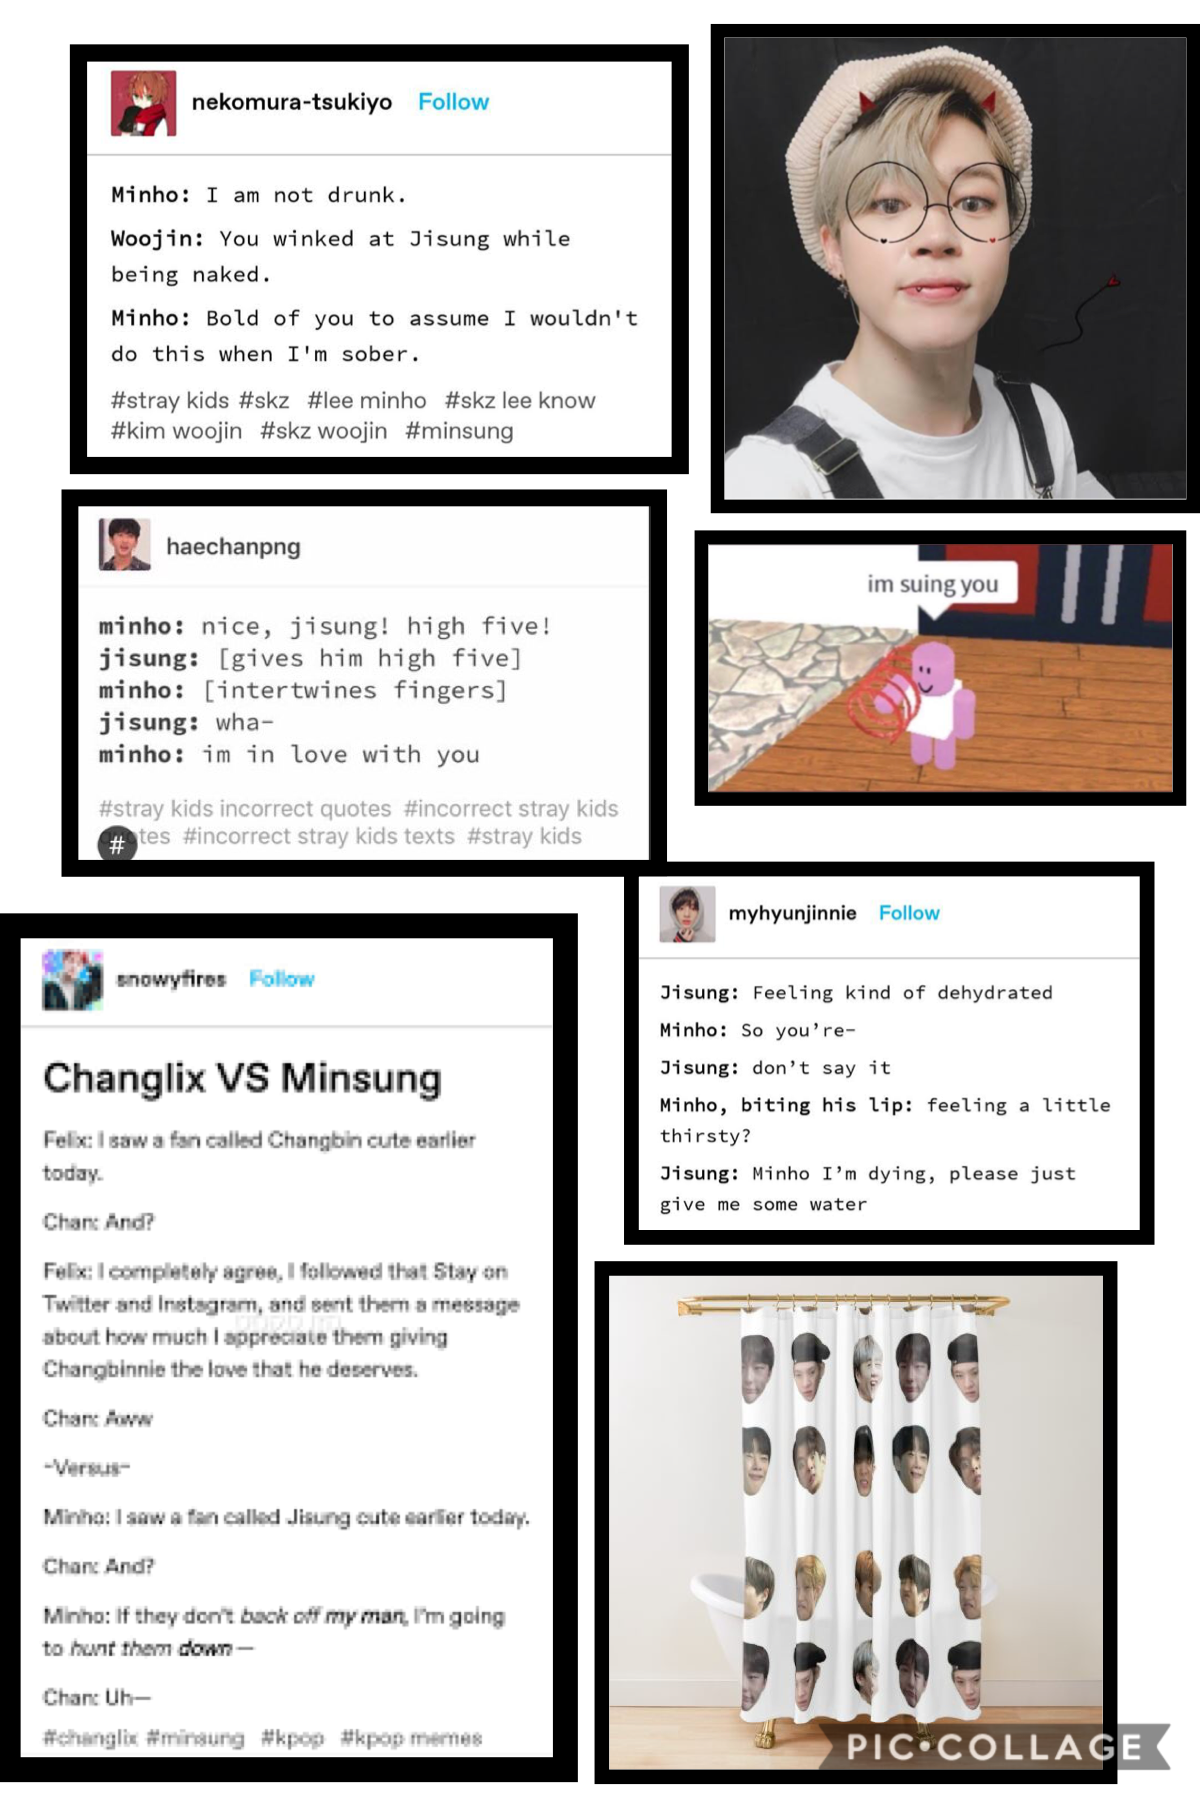 Pt 3 of what's in my camera roll, Minho be wildin